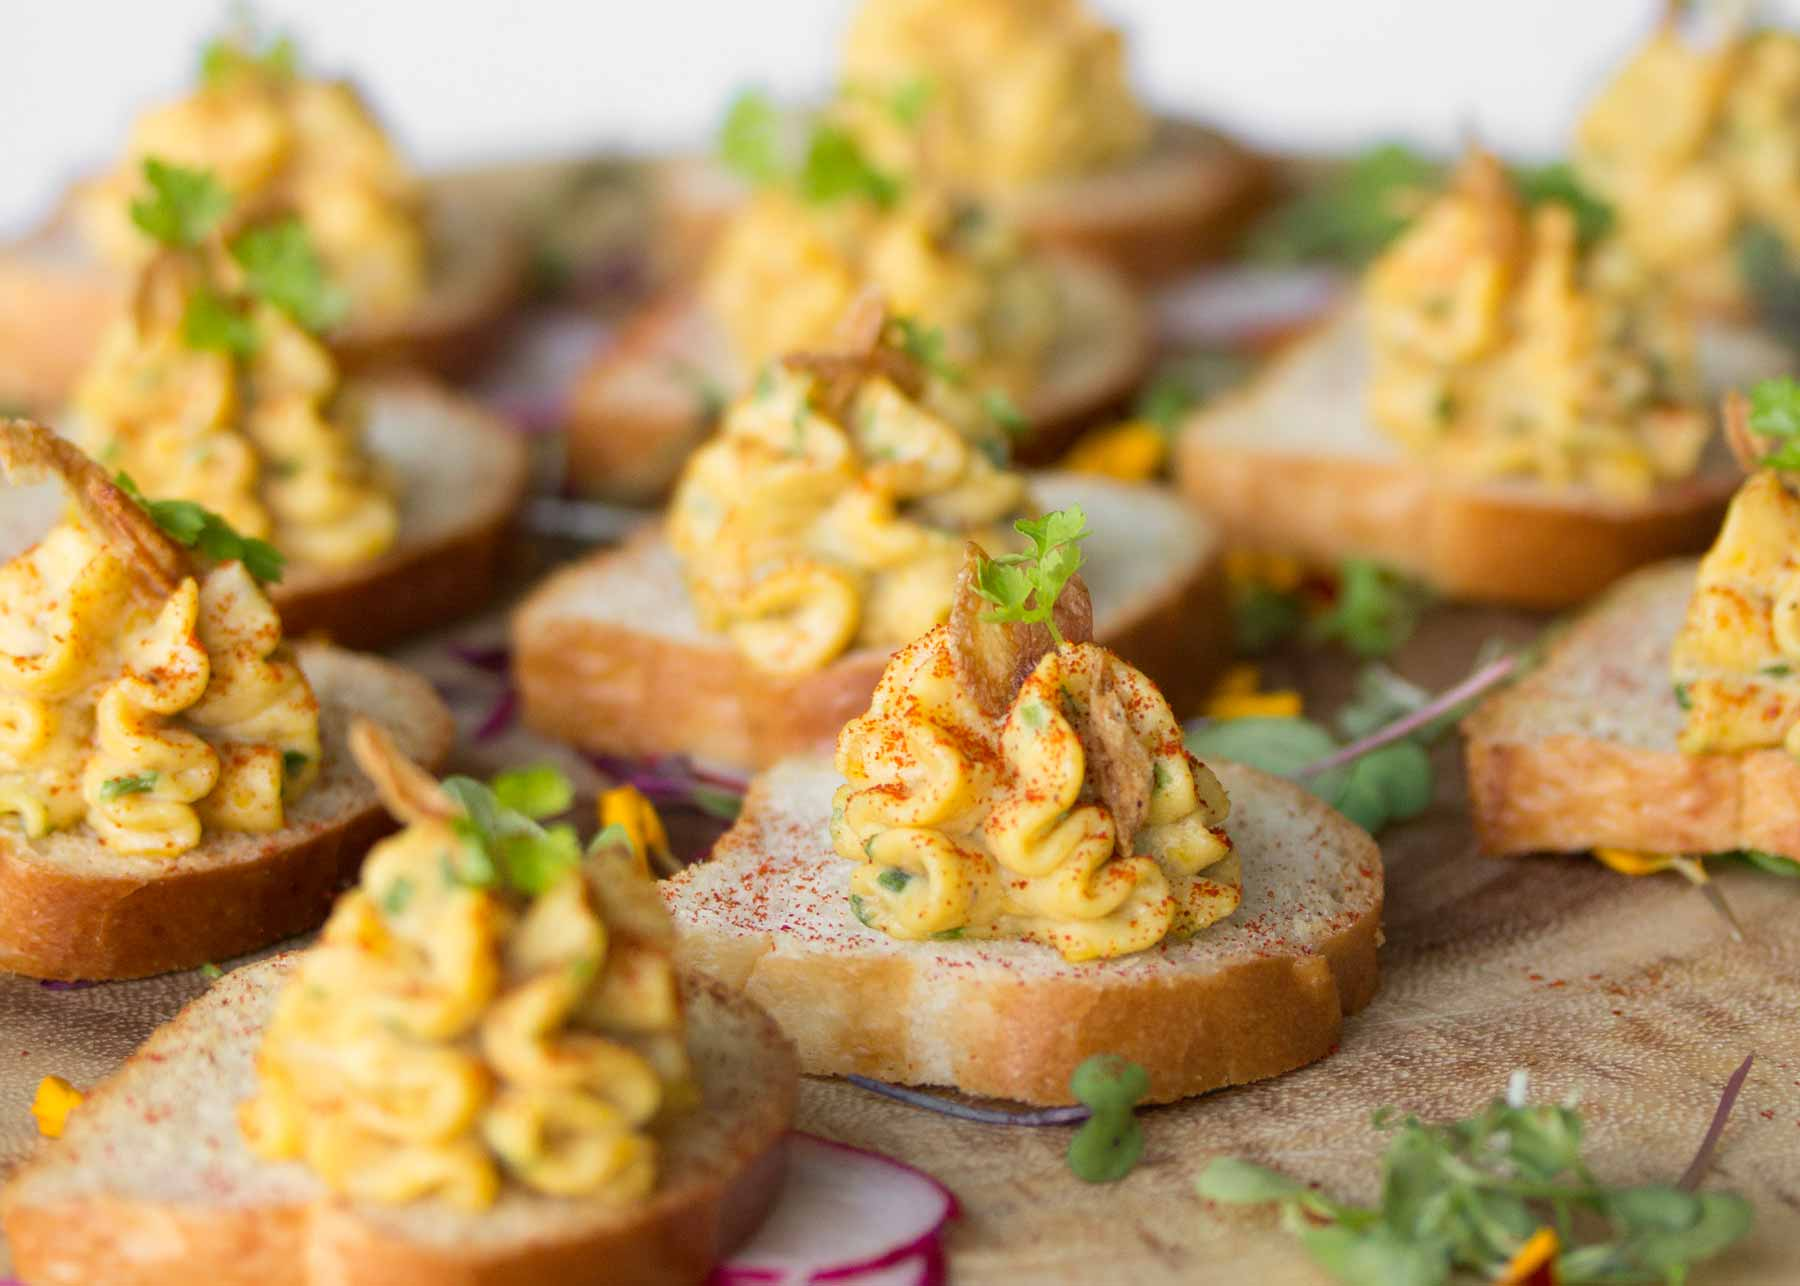 Catering Services — passed canapés